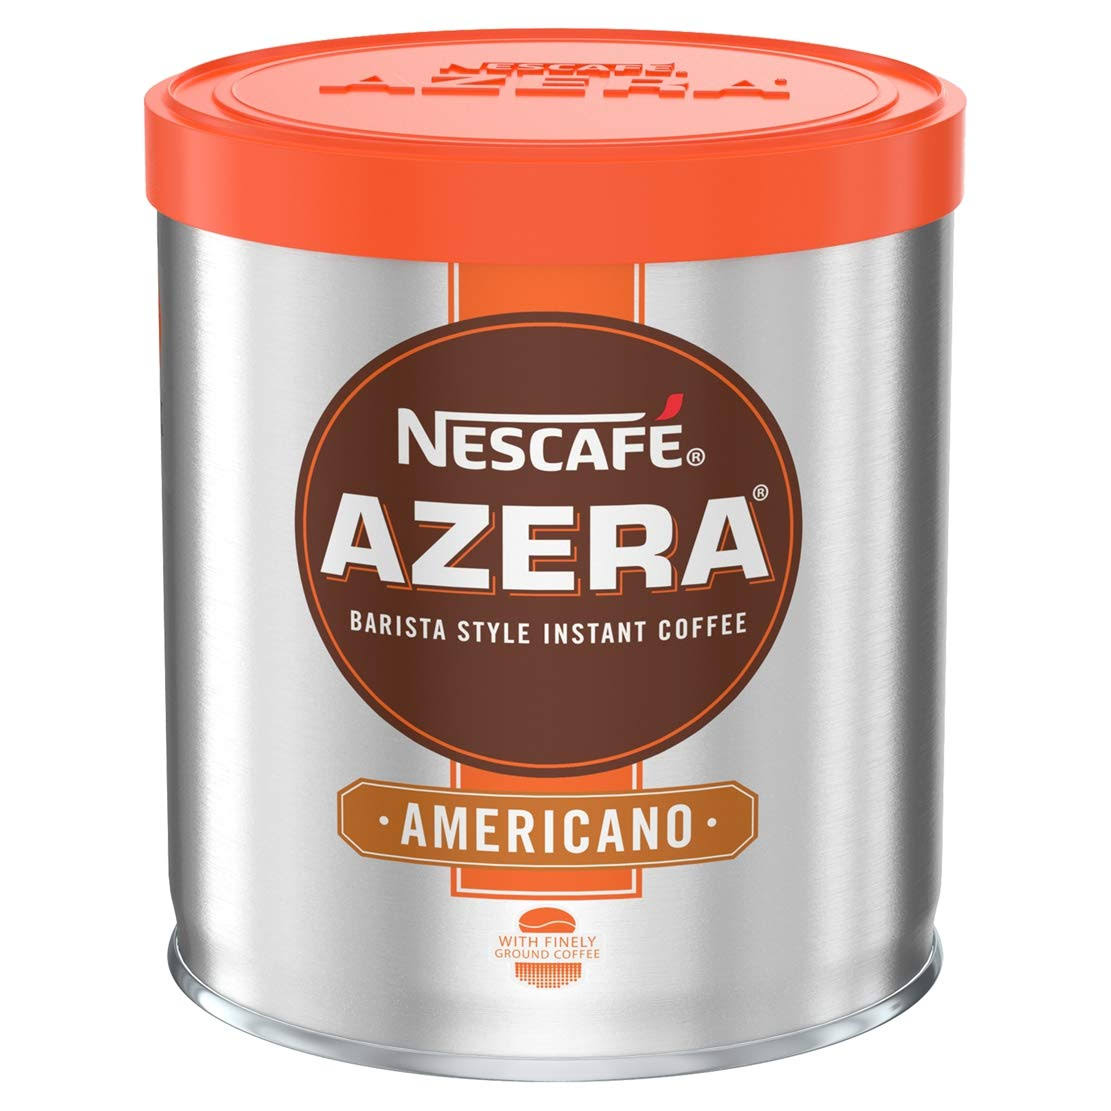 Nescafé Azera Americano Barista Style Instant Coffee - with Finely Ground Beans, 60g